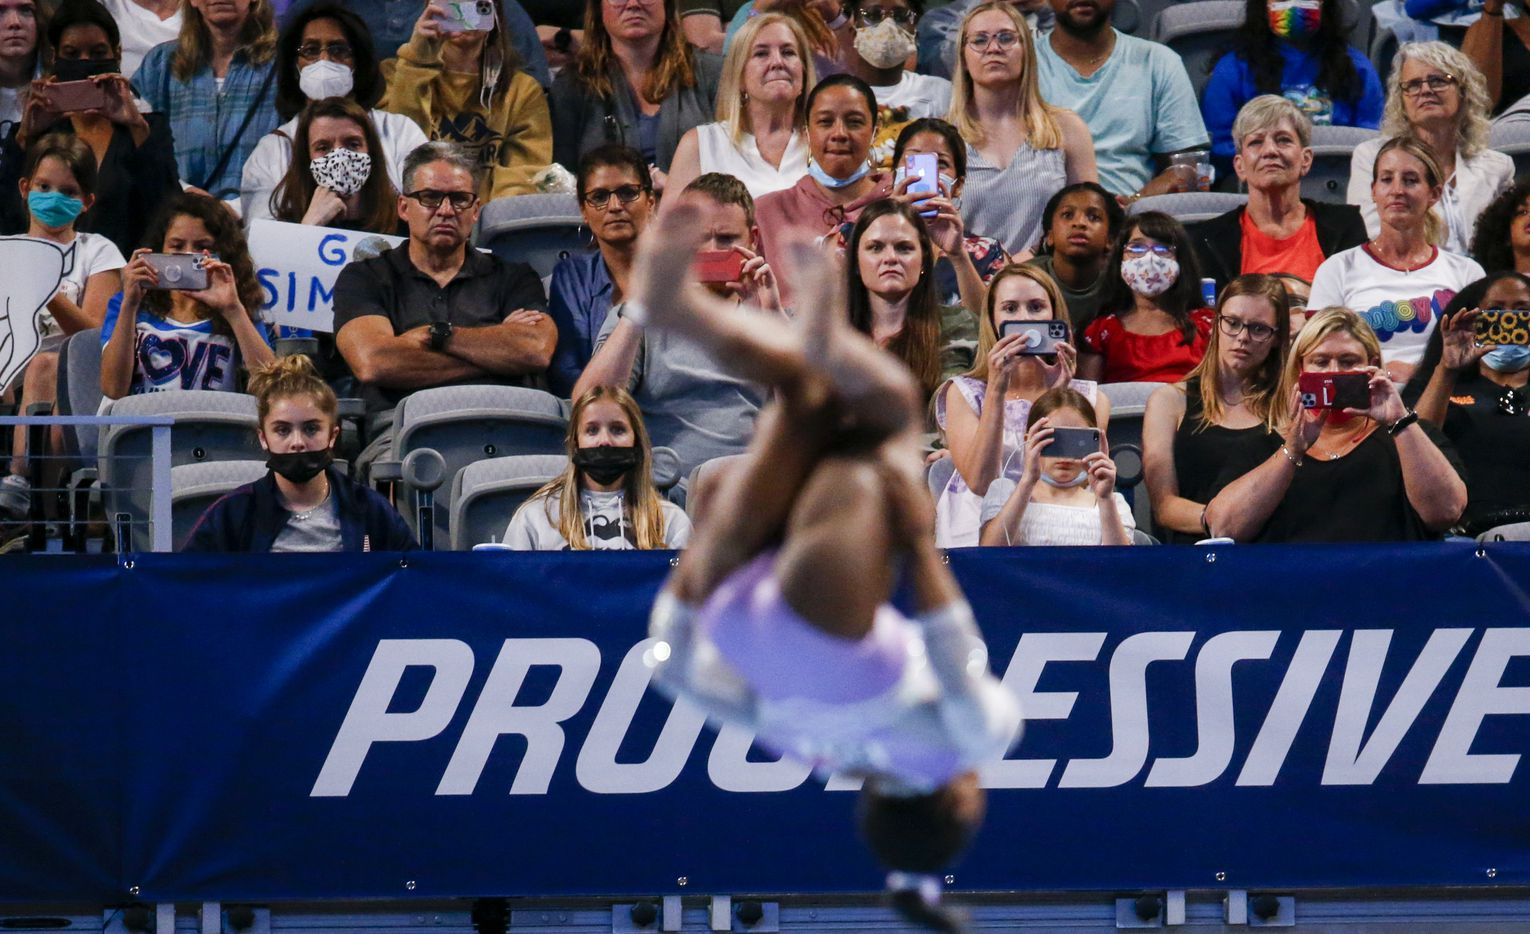 Fans watch Simone Biles perform on the floor during day 1 of the senior women's US gymnastics championships on Friday, June 4, 2021, at Dickies Arena in Fort Worth. (Juan Figueroa/The Dallas Morning News)